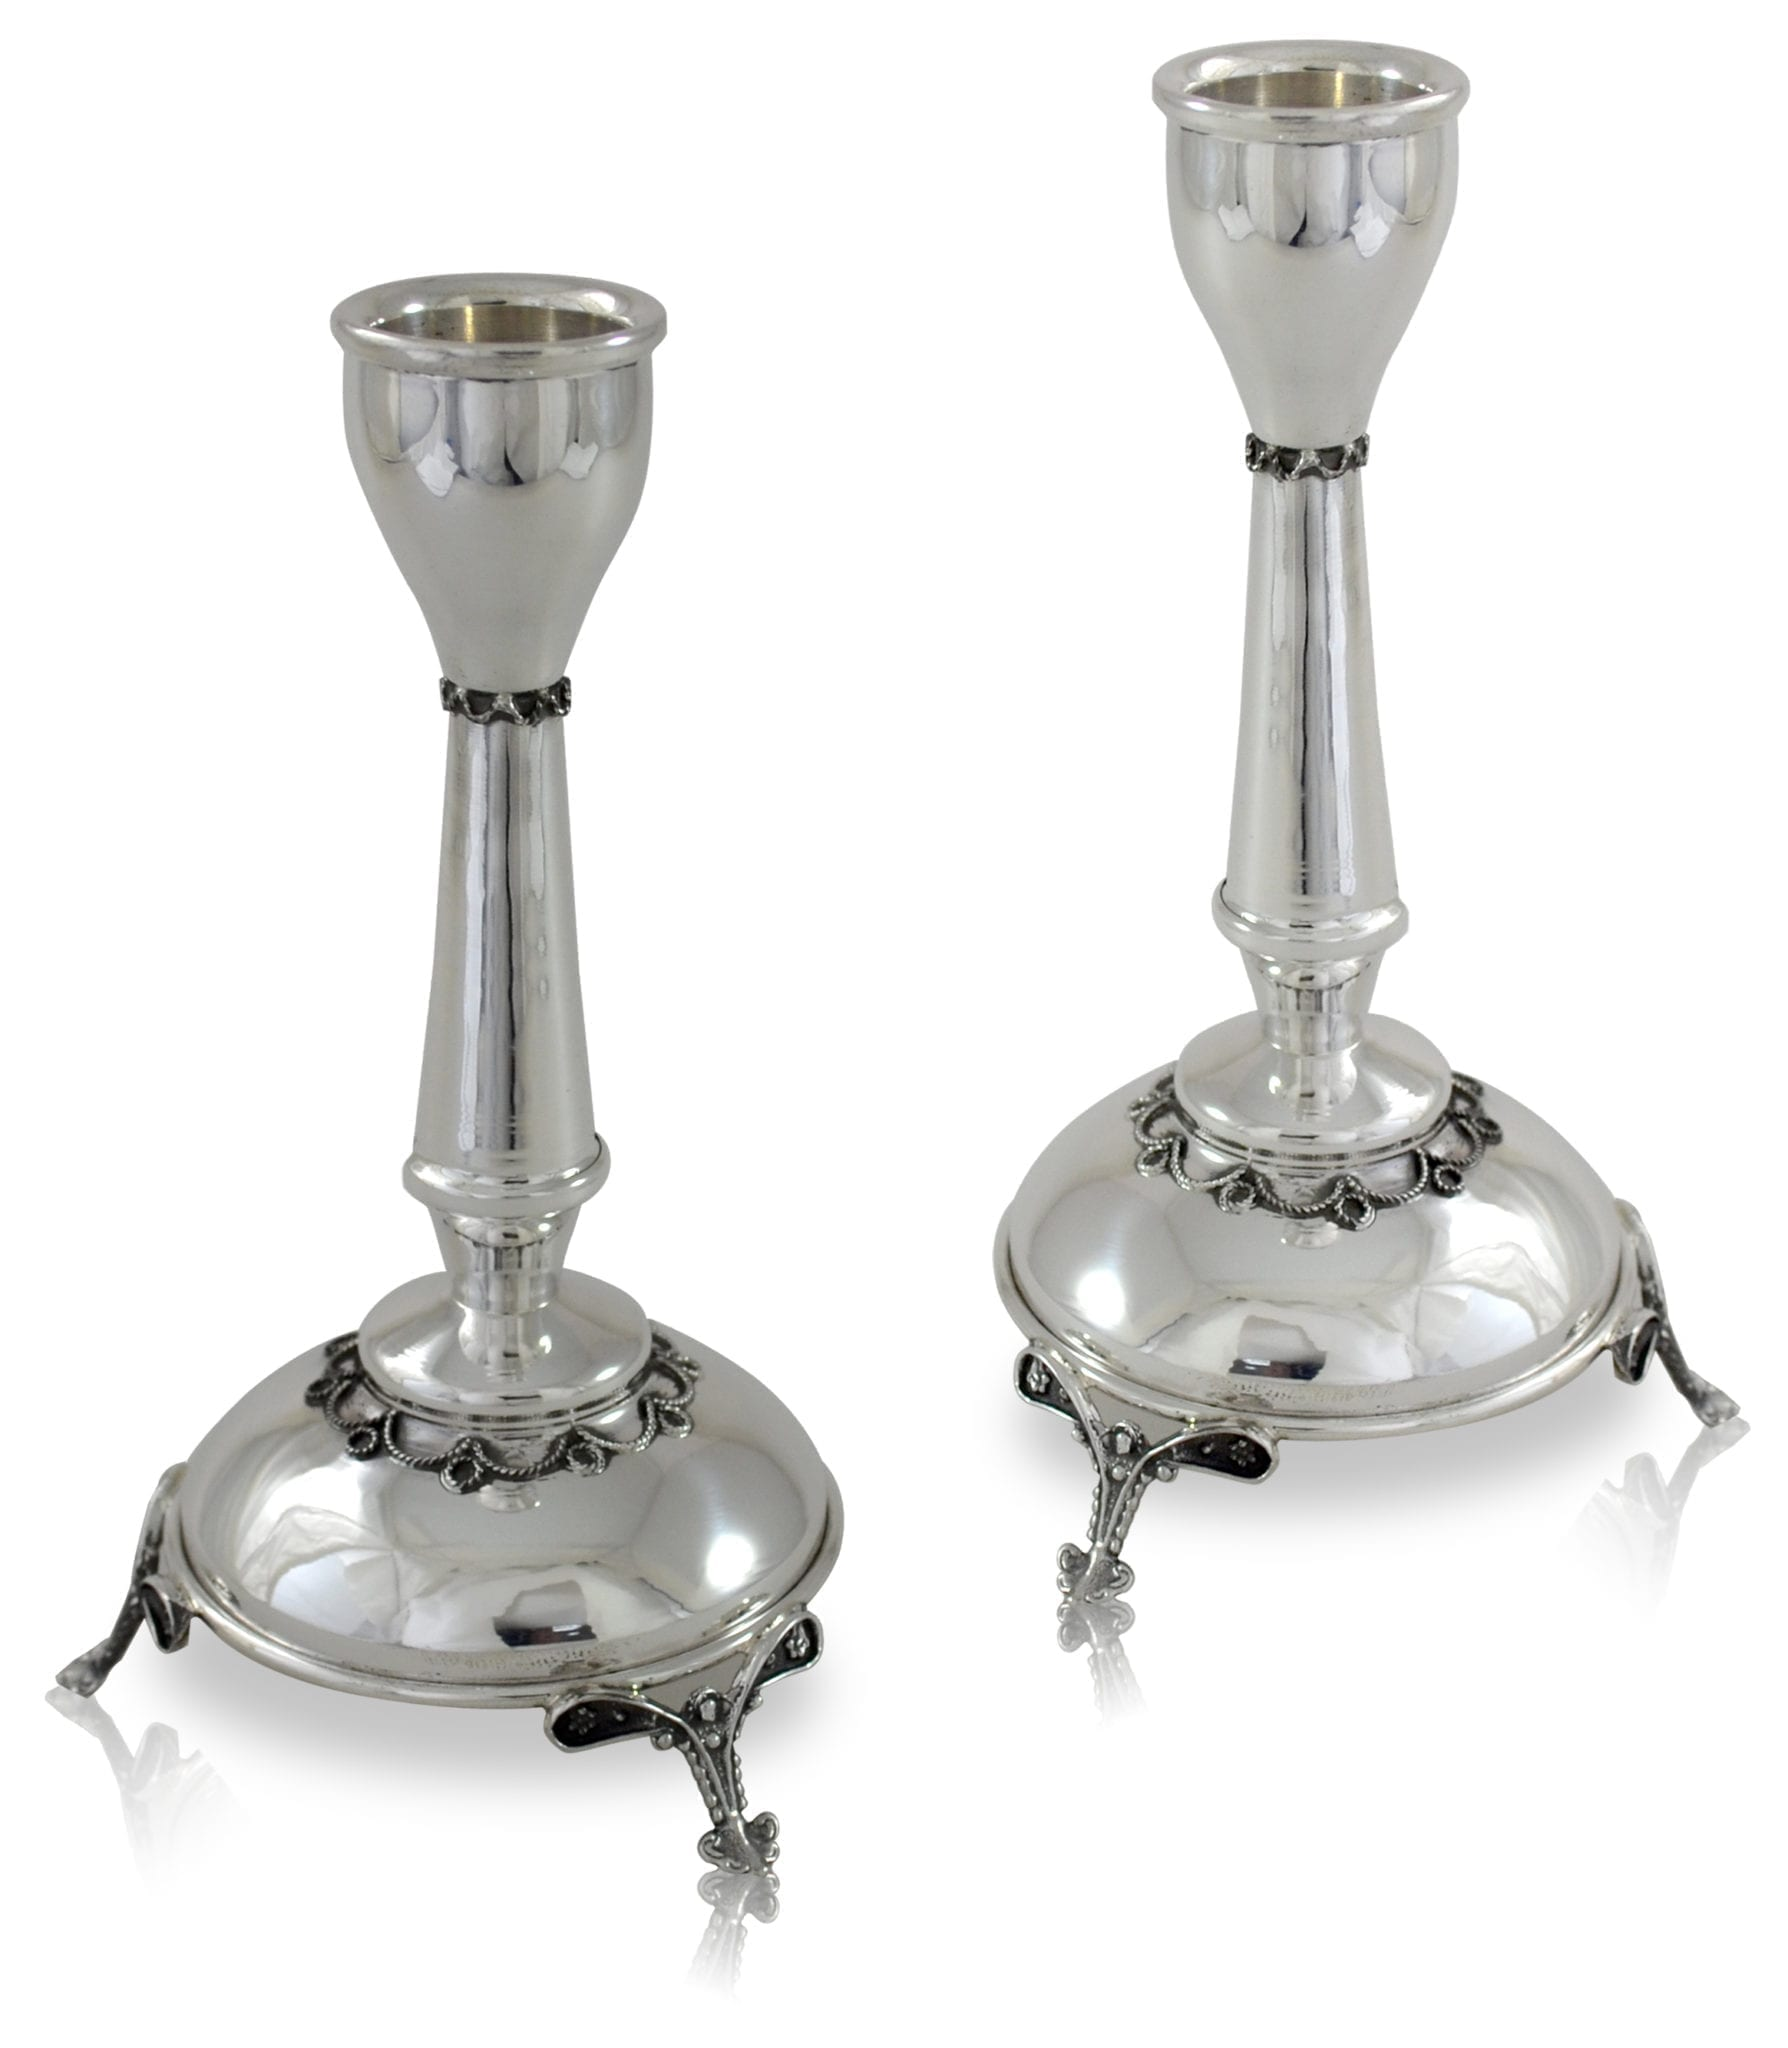 Sterling silver candlesticks in a classic design with rich filigree decorations. Sterling silver Shabbat Judaica & home decor, made in Israel.